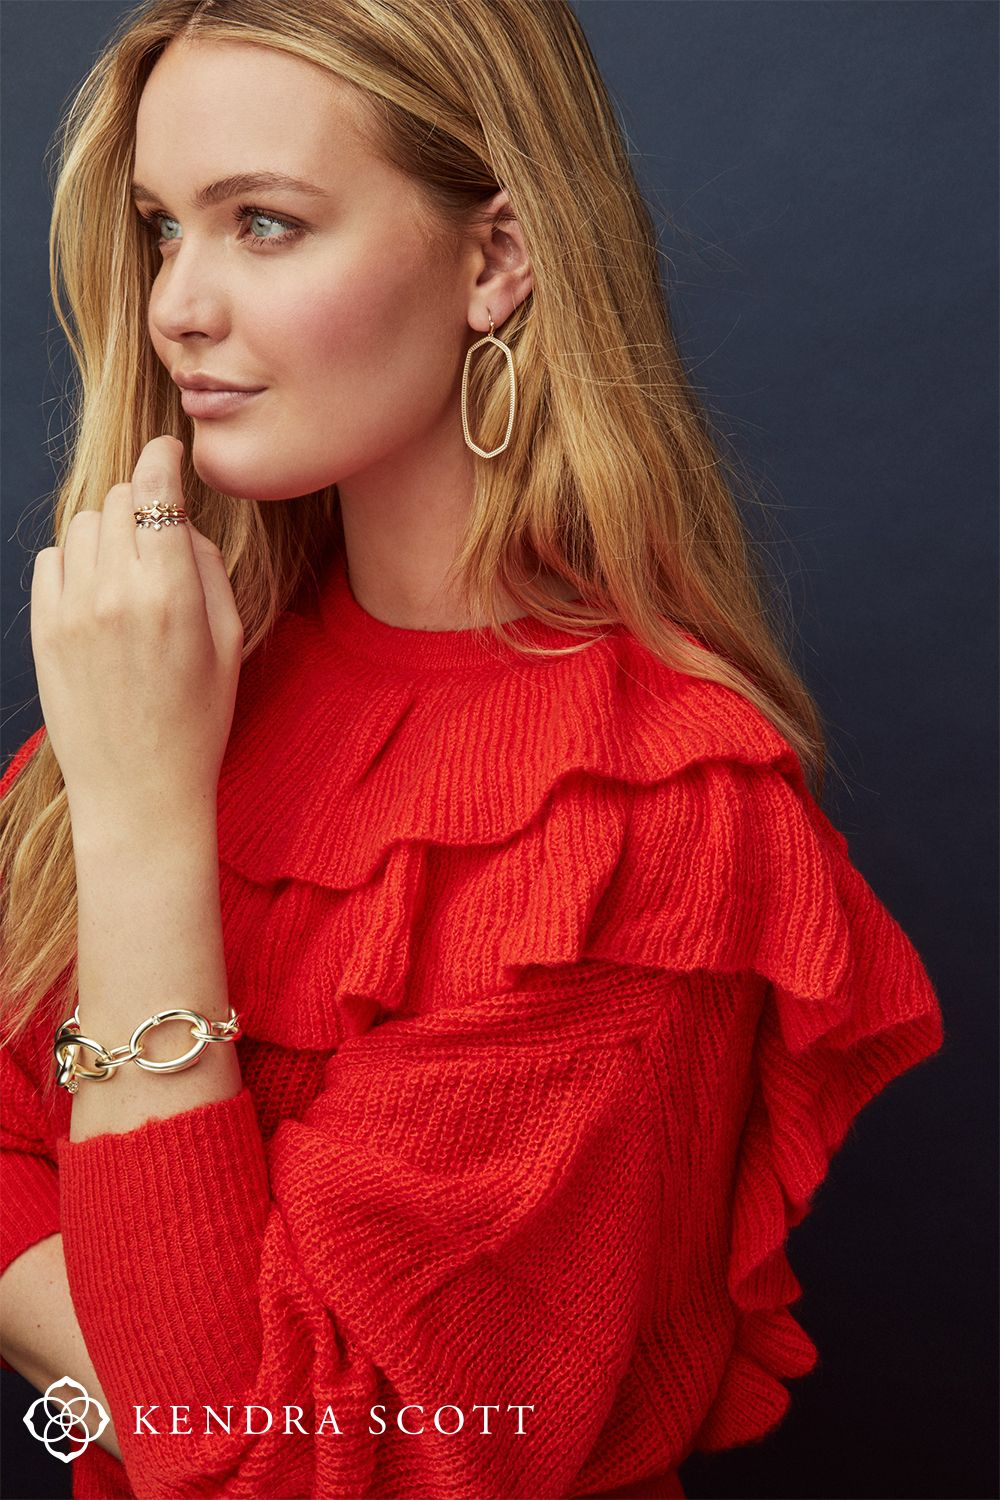 Find the perfect gift at kendra scott bestie gifts